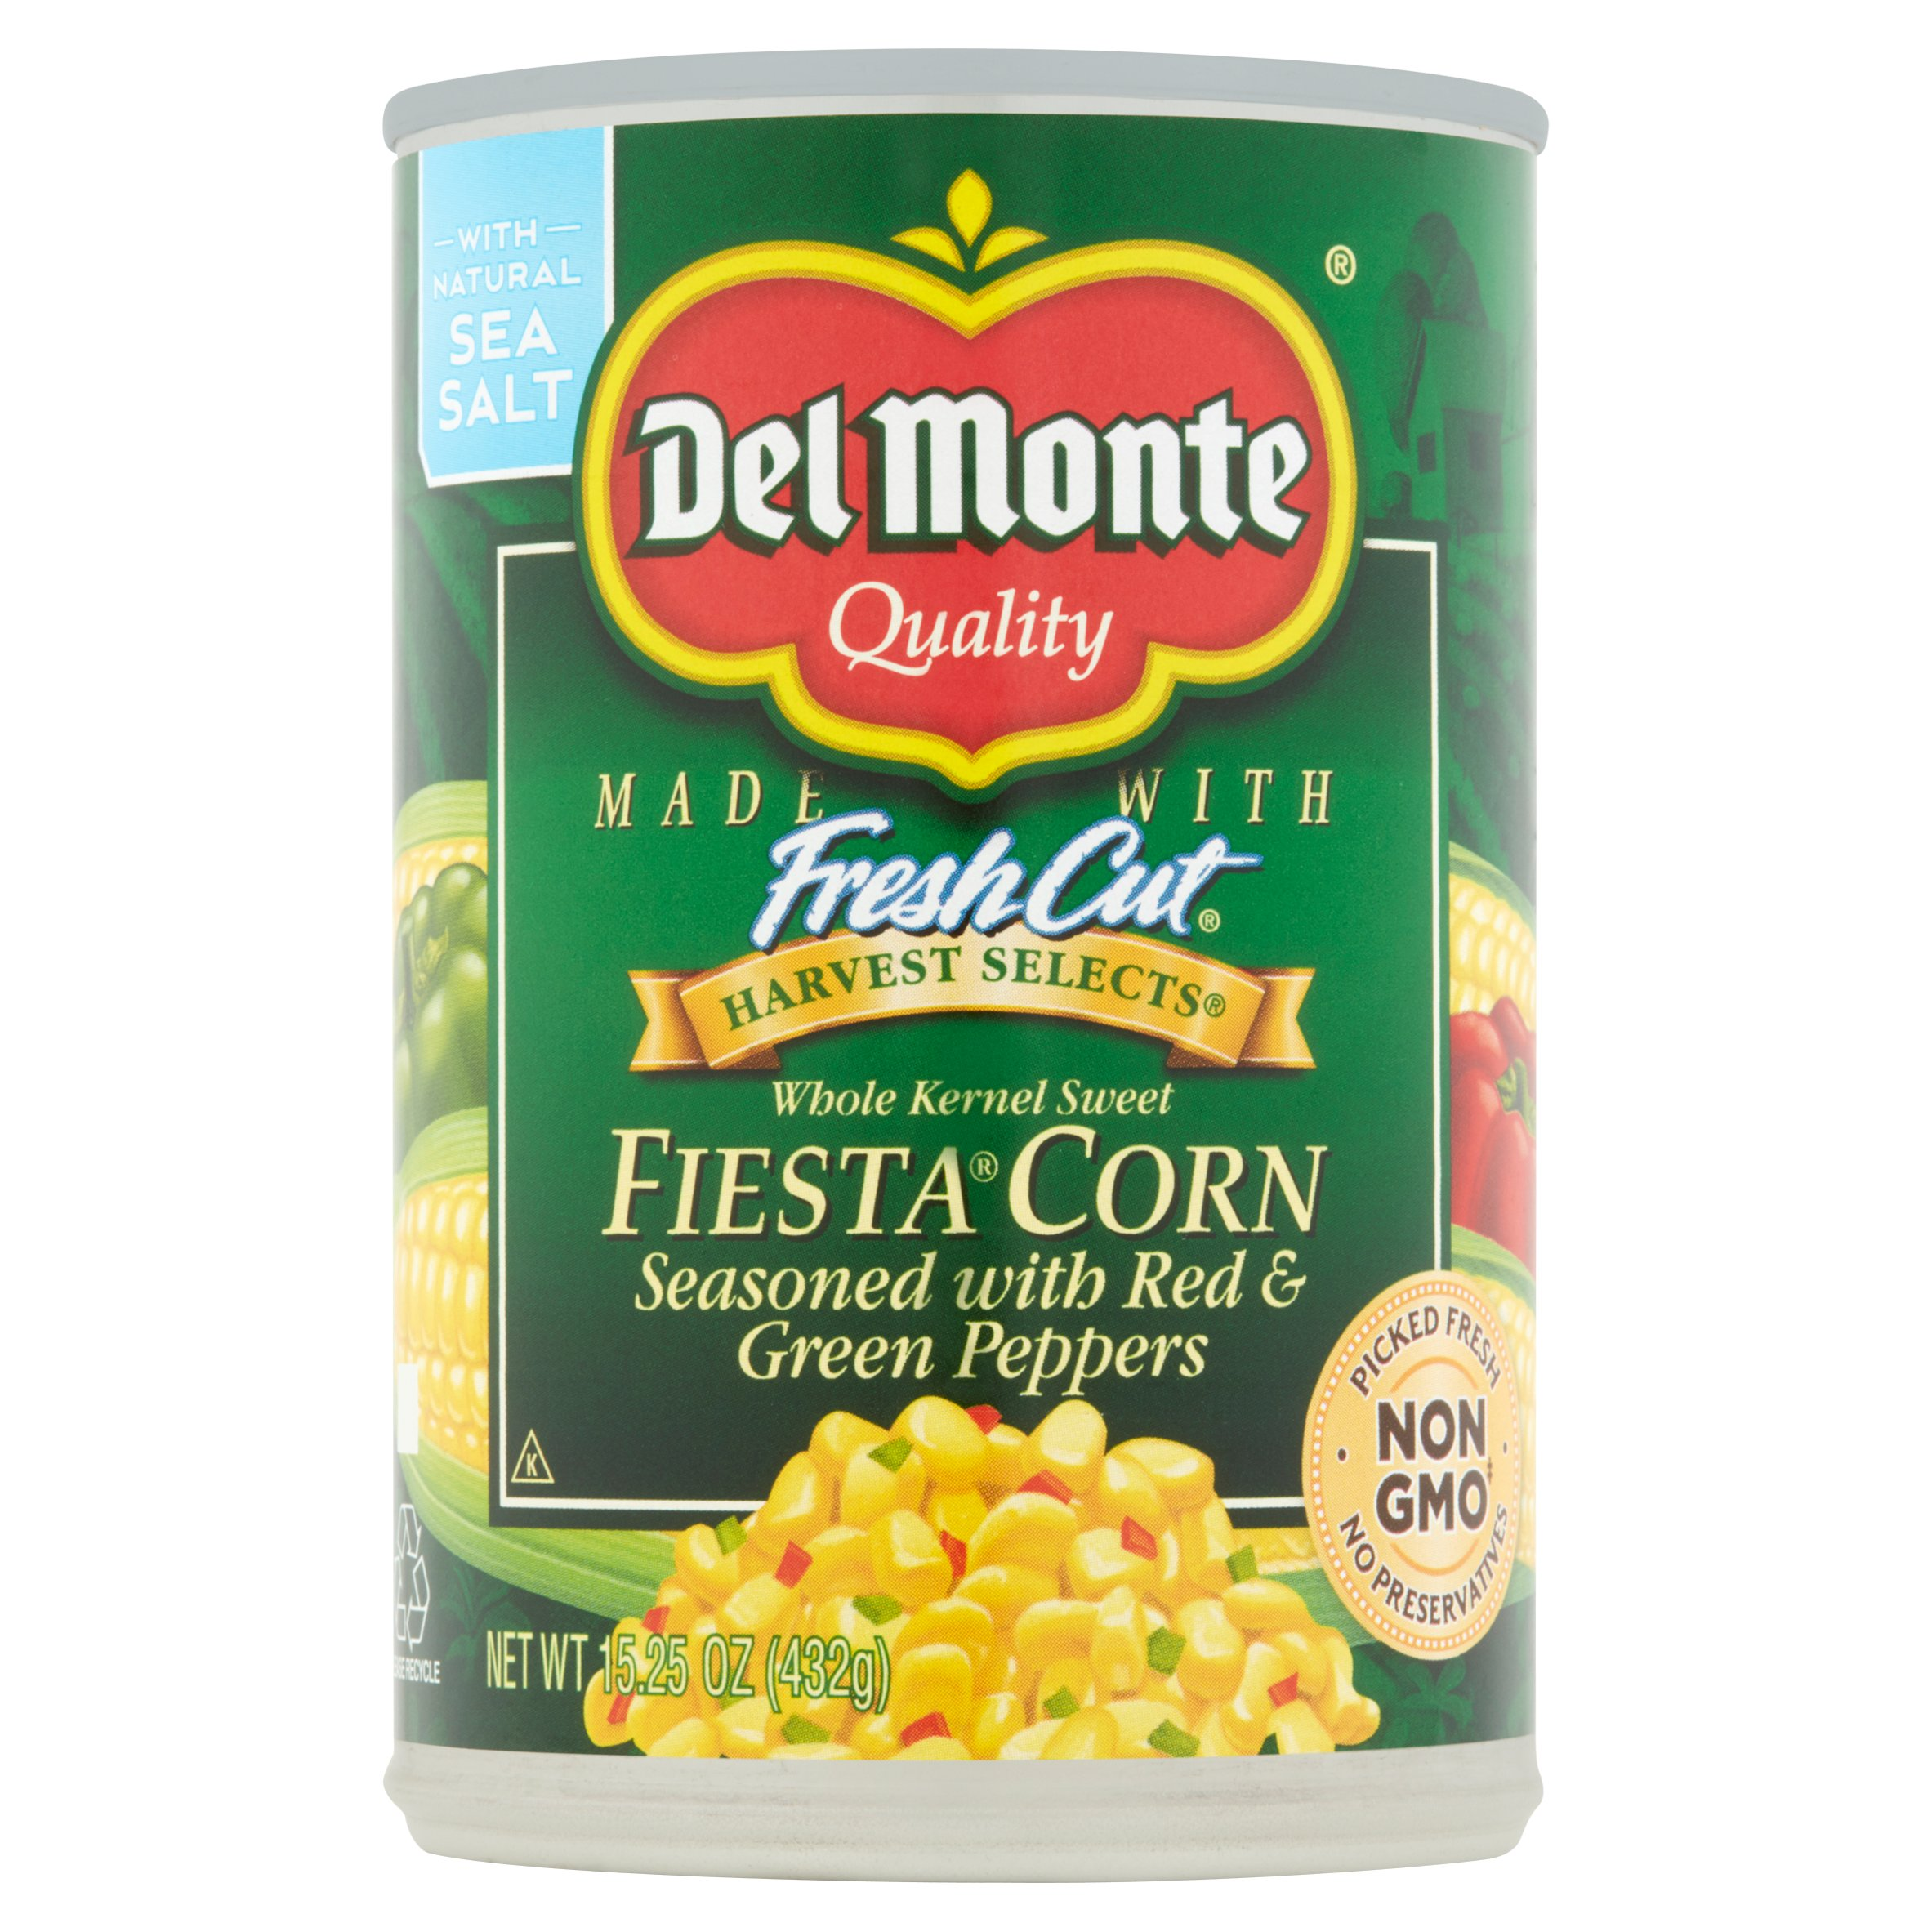 Del Monte Whole Kernel Sweet Fiesta Corn, 15.25 oz